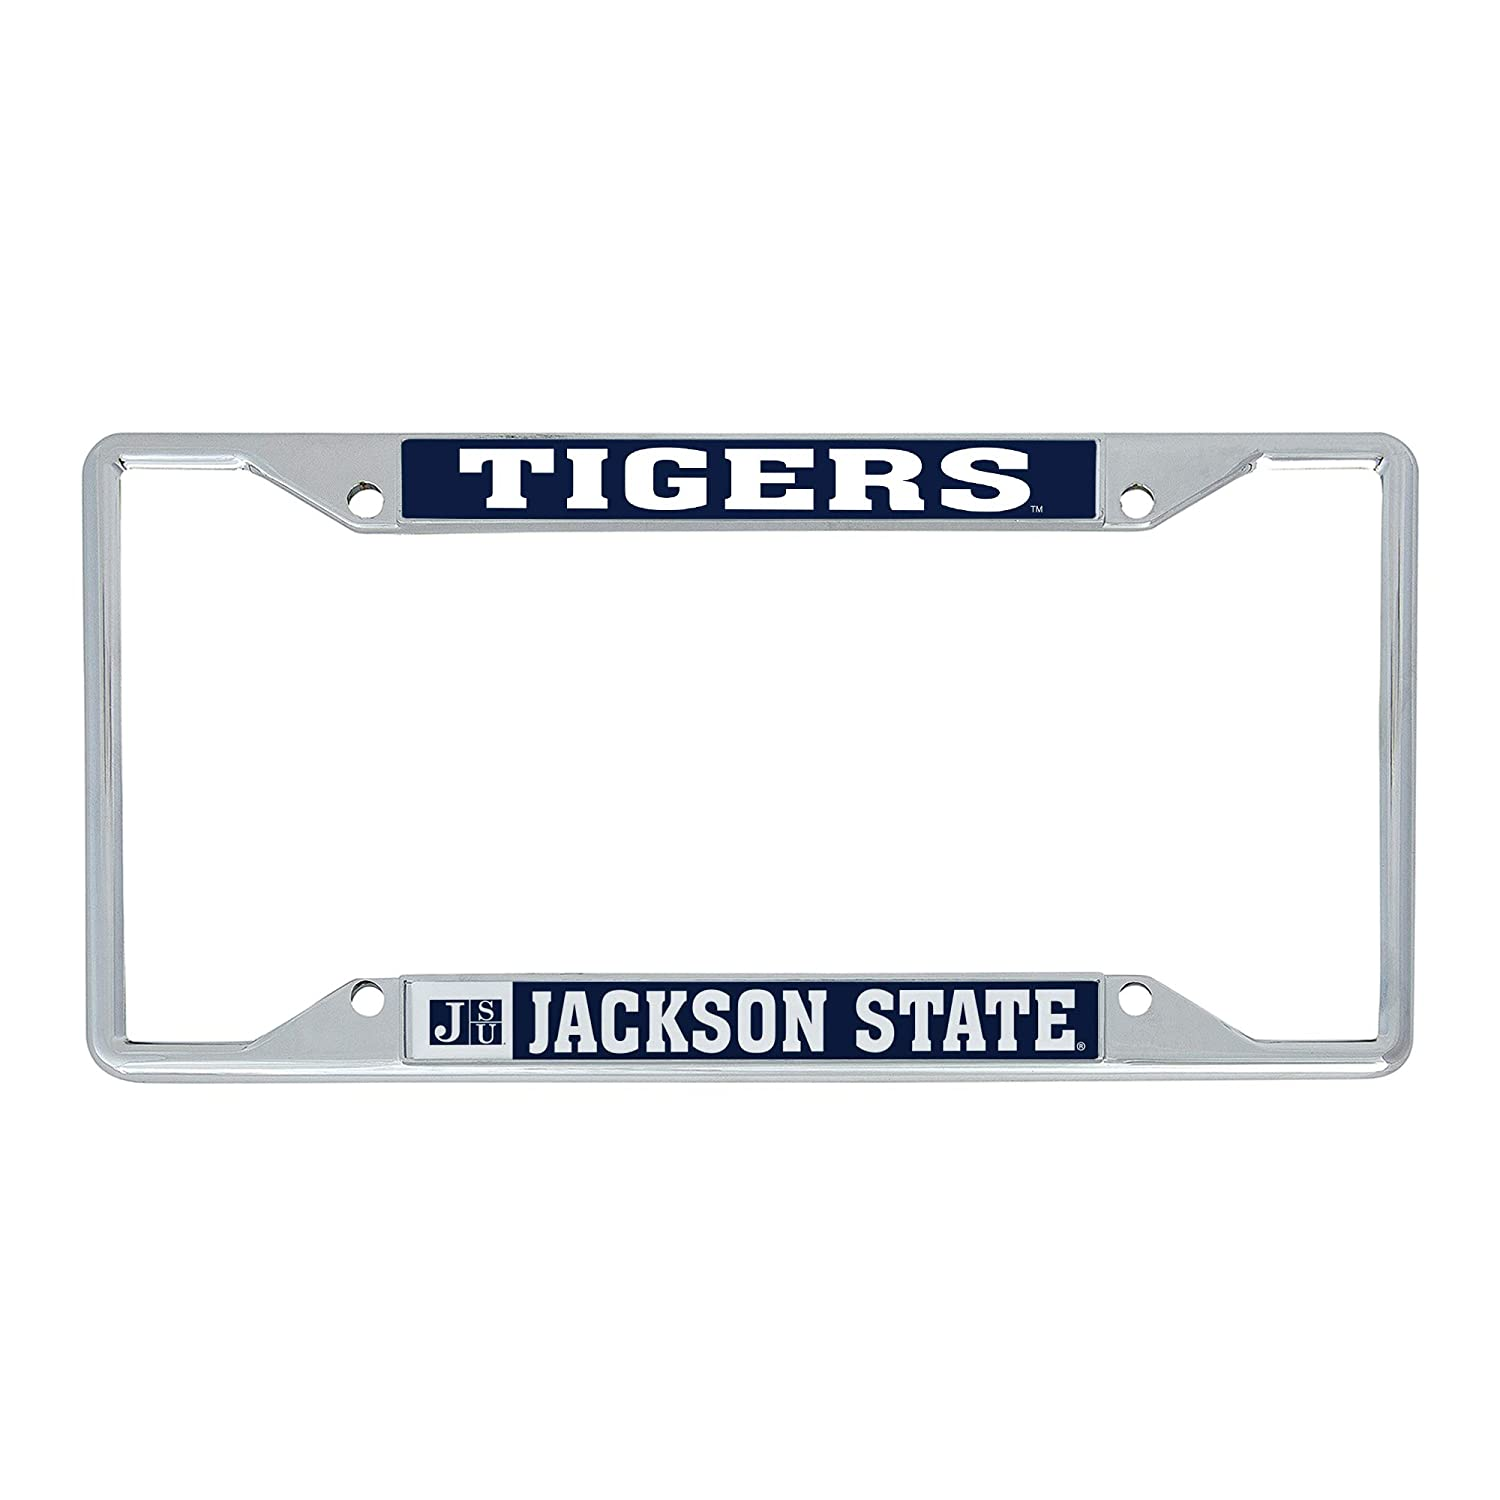 Desert Cactus Jackson State University J-State JSU Tigers NCAA Metal License Plate Frame for Front Back of Car Officially Licensed Mascot